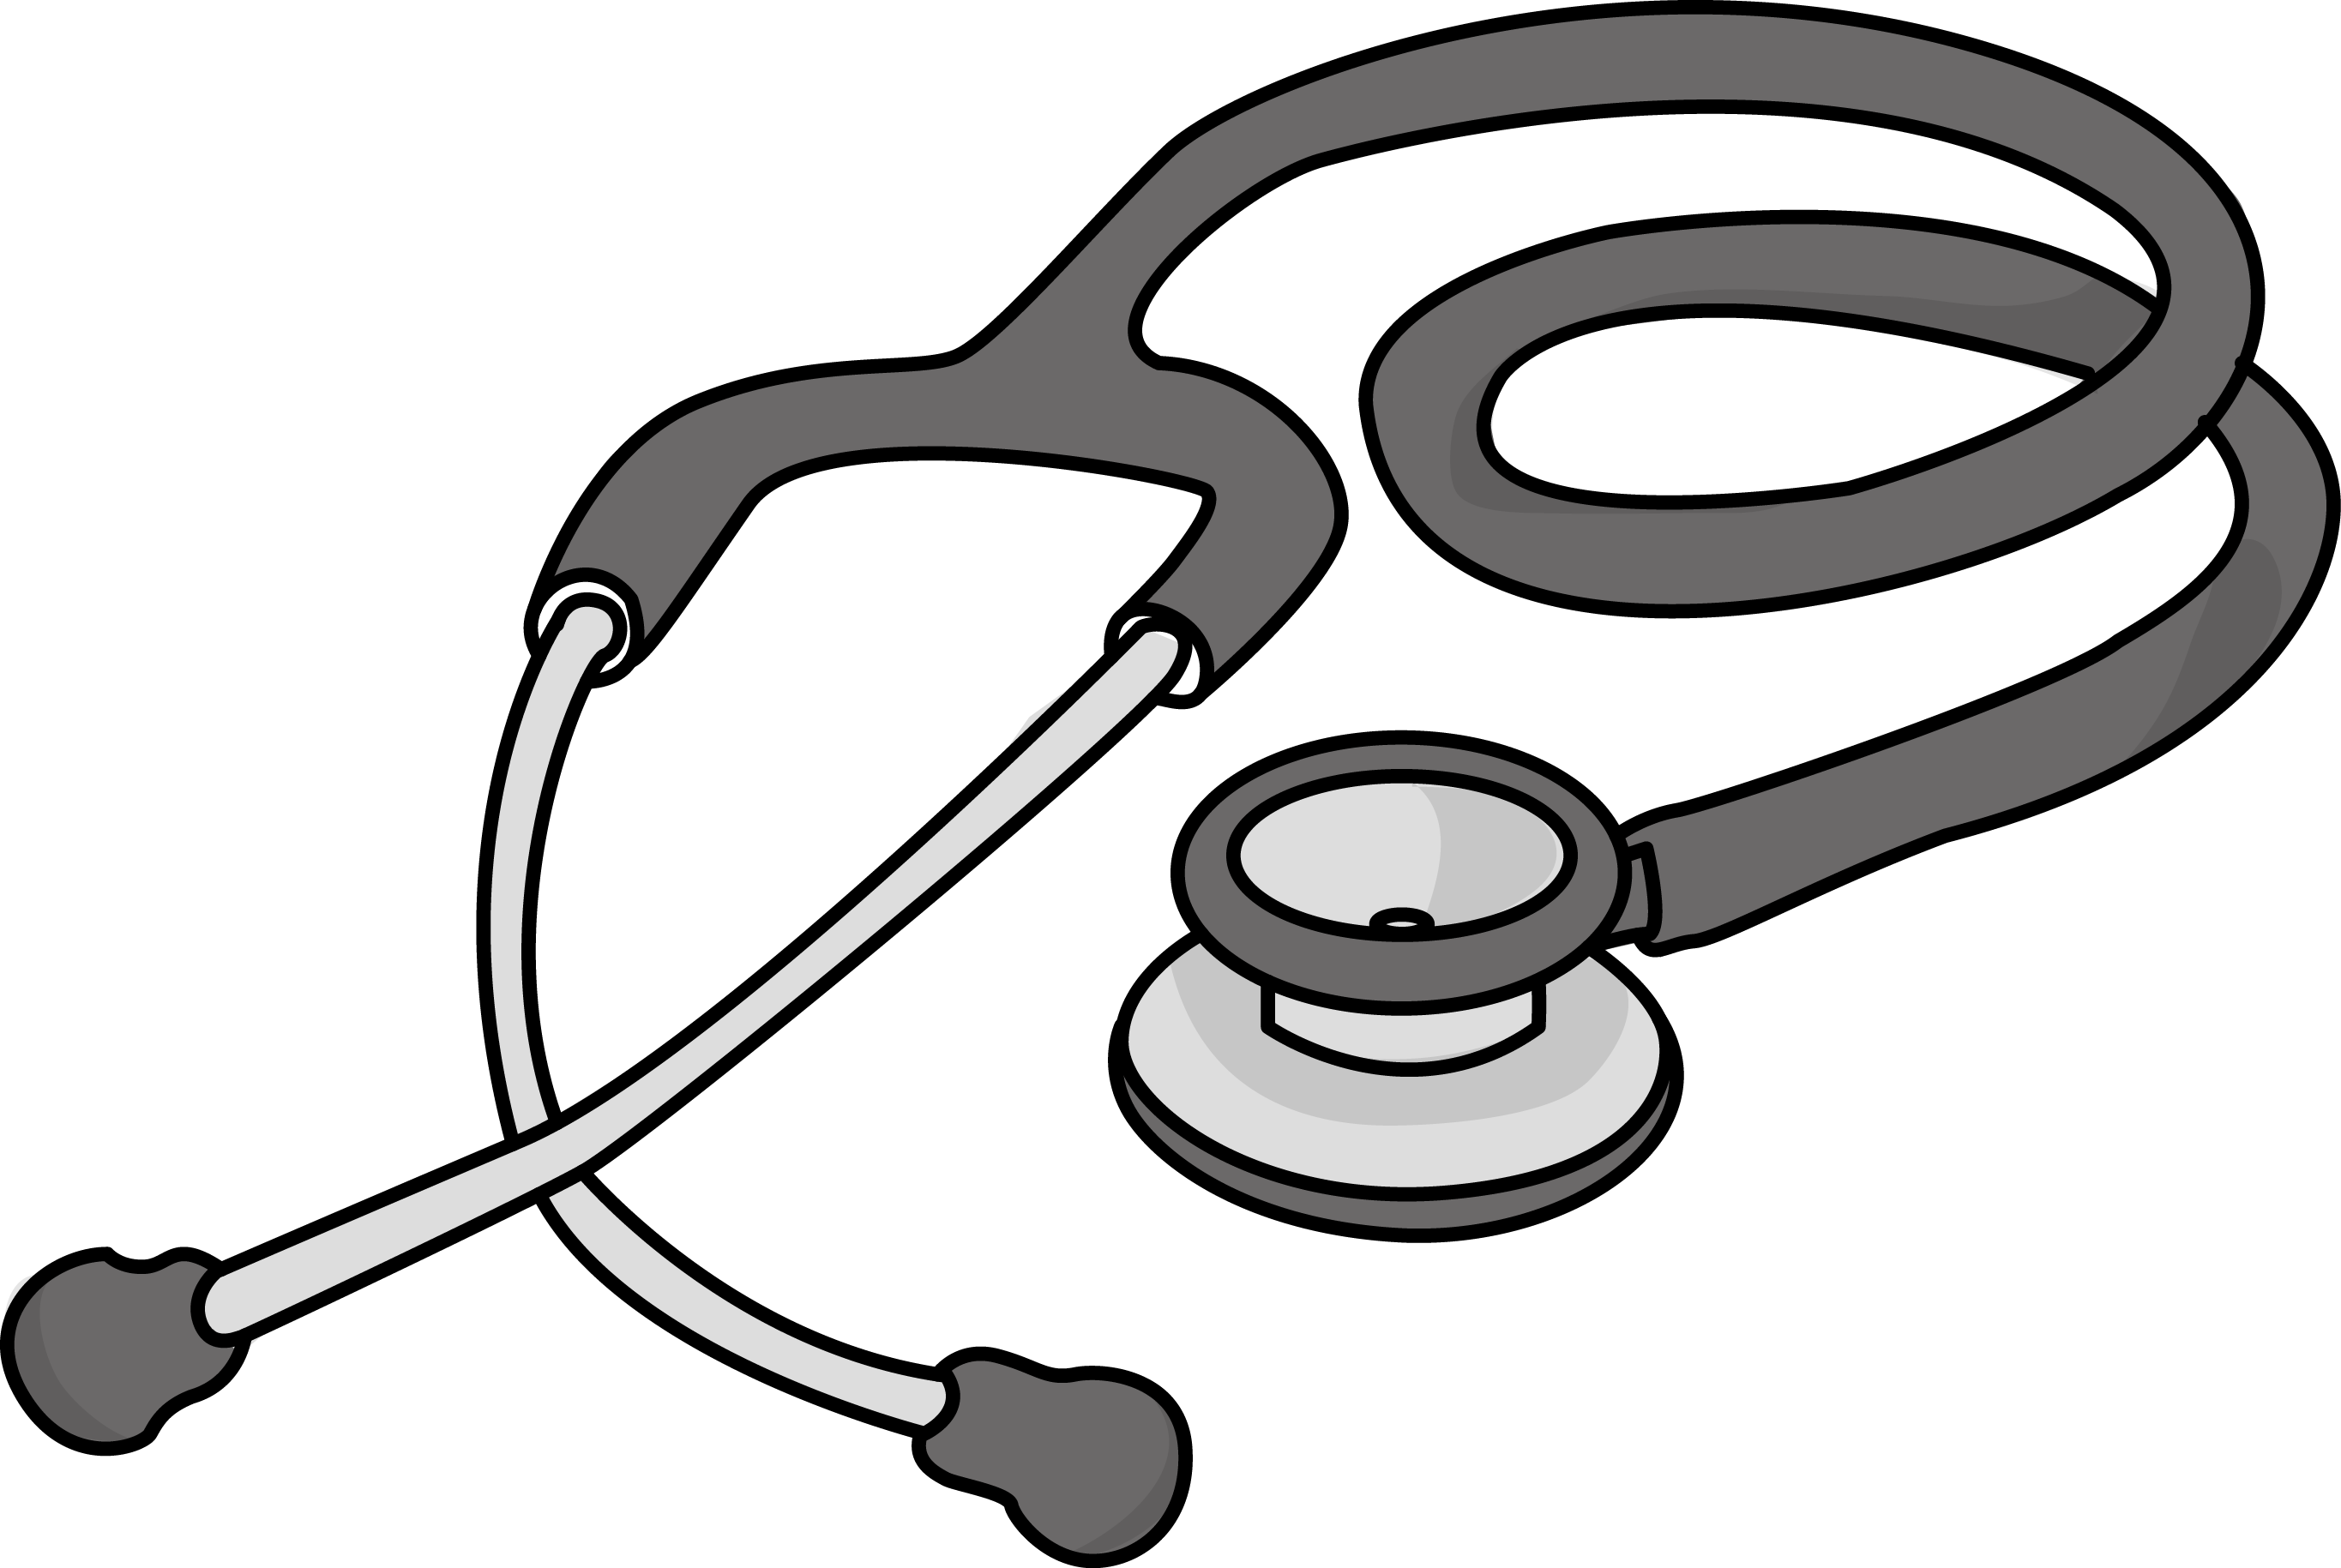 graphic freeuse stock  collection of stethoscope. Health clipart black and white